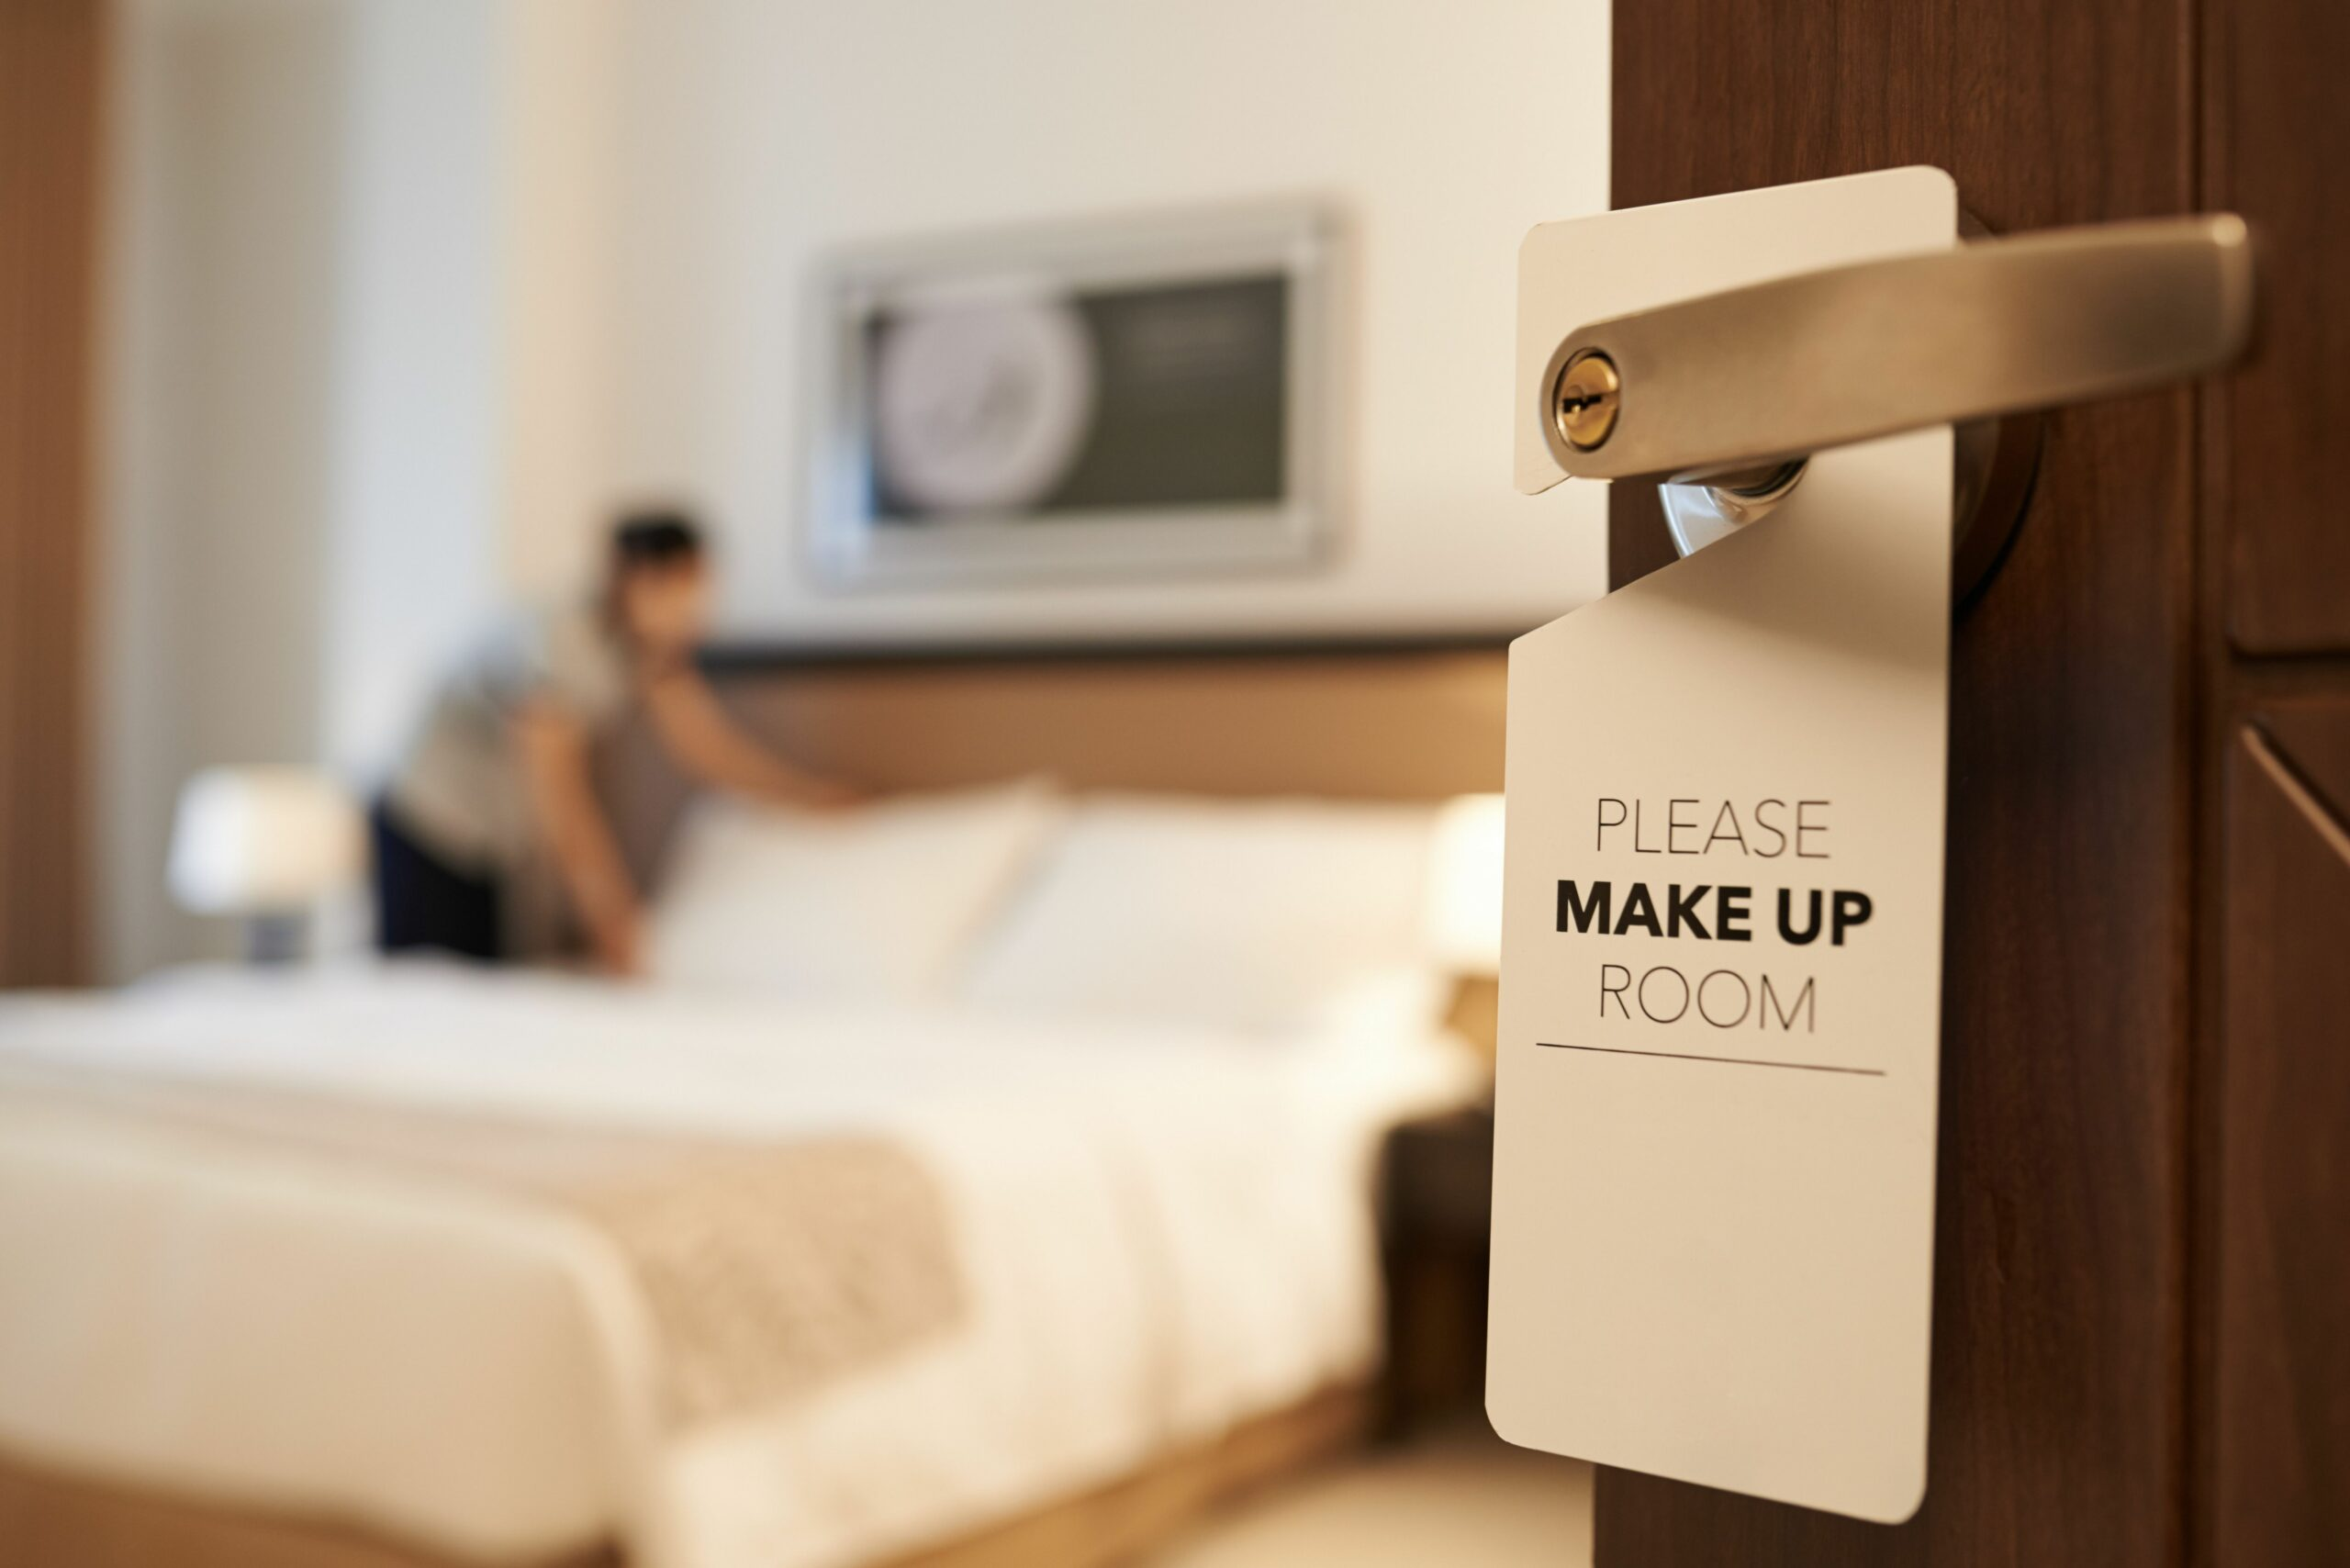 How Much to Tip Hotel Housekeeping | Hotel housekeeping ...